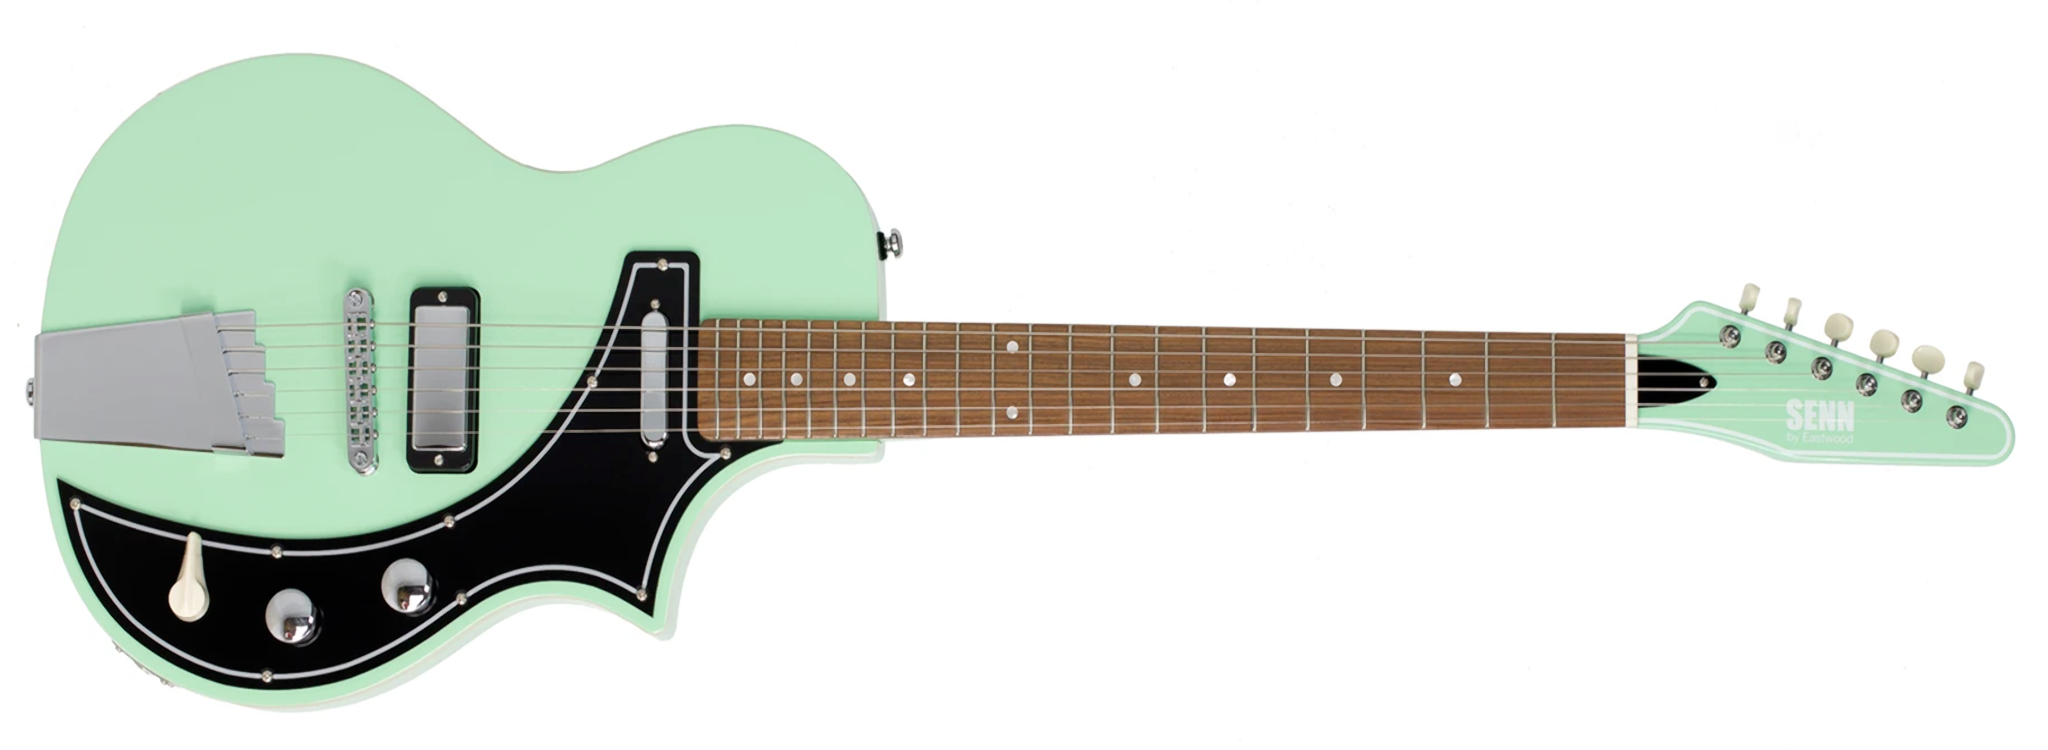 The Continental by Jeff Senn - Surf Green